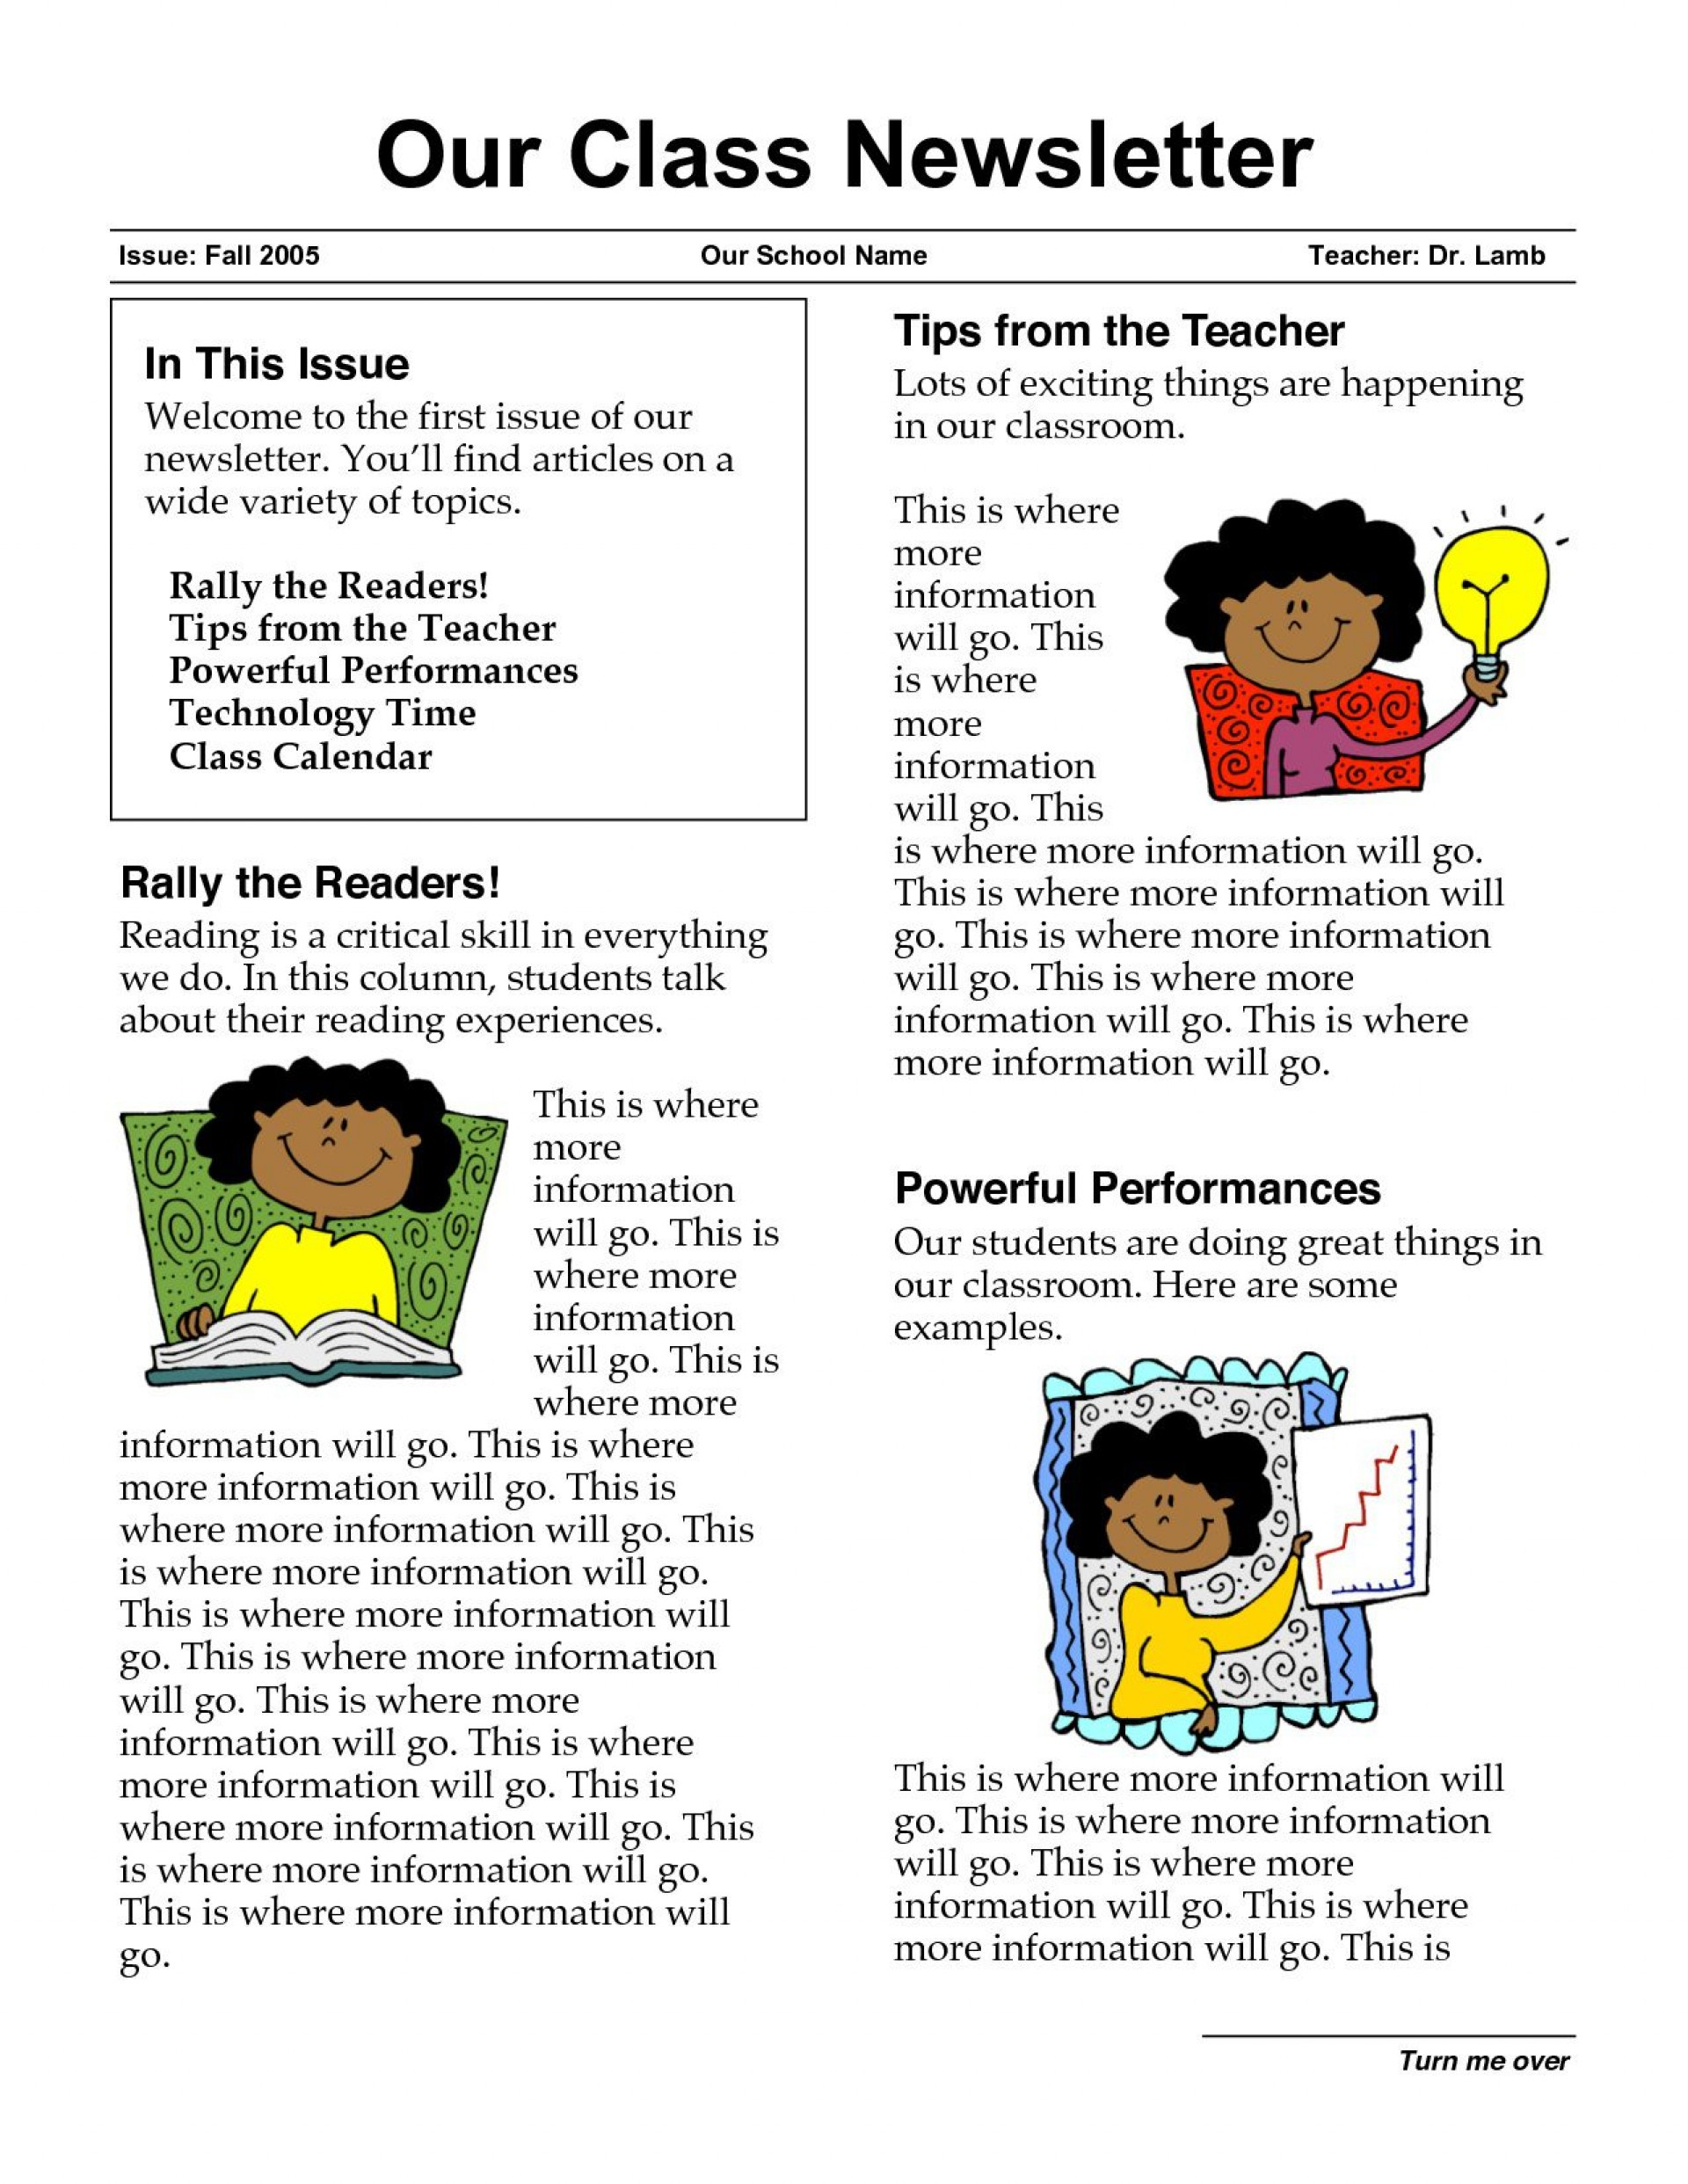 003 Fascinating Free Newsletter Template For Teacher Image  Downloadable Editable Preschool1920